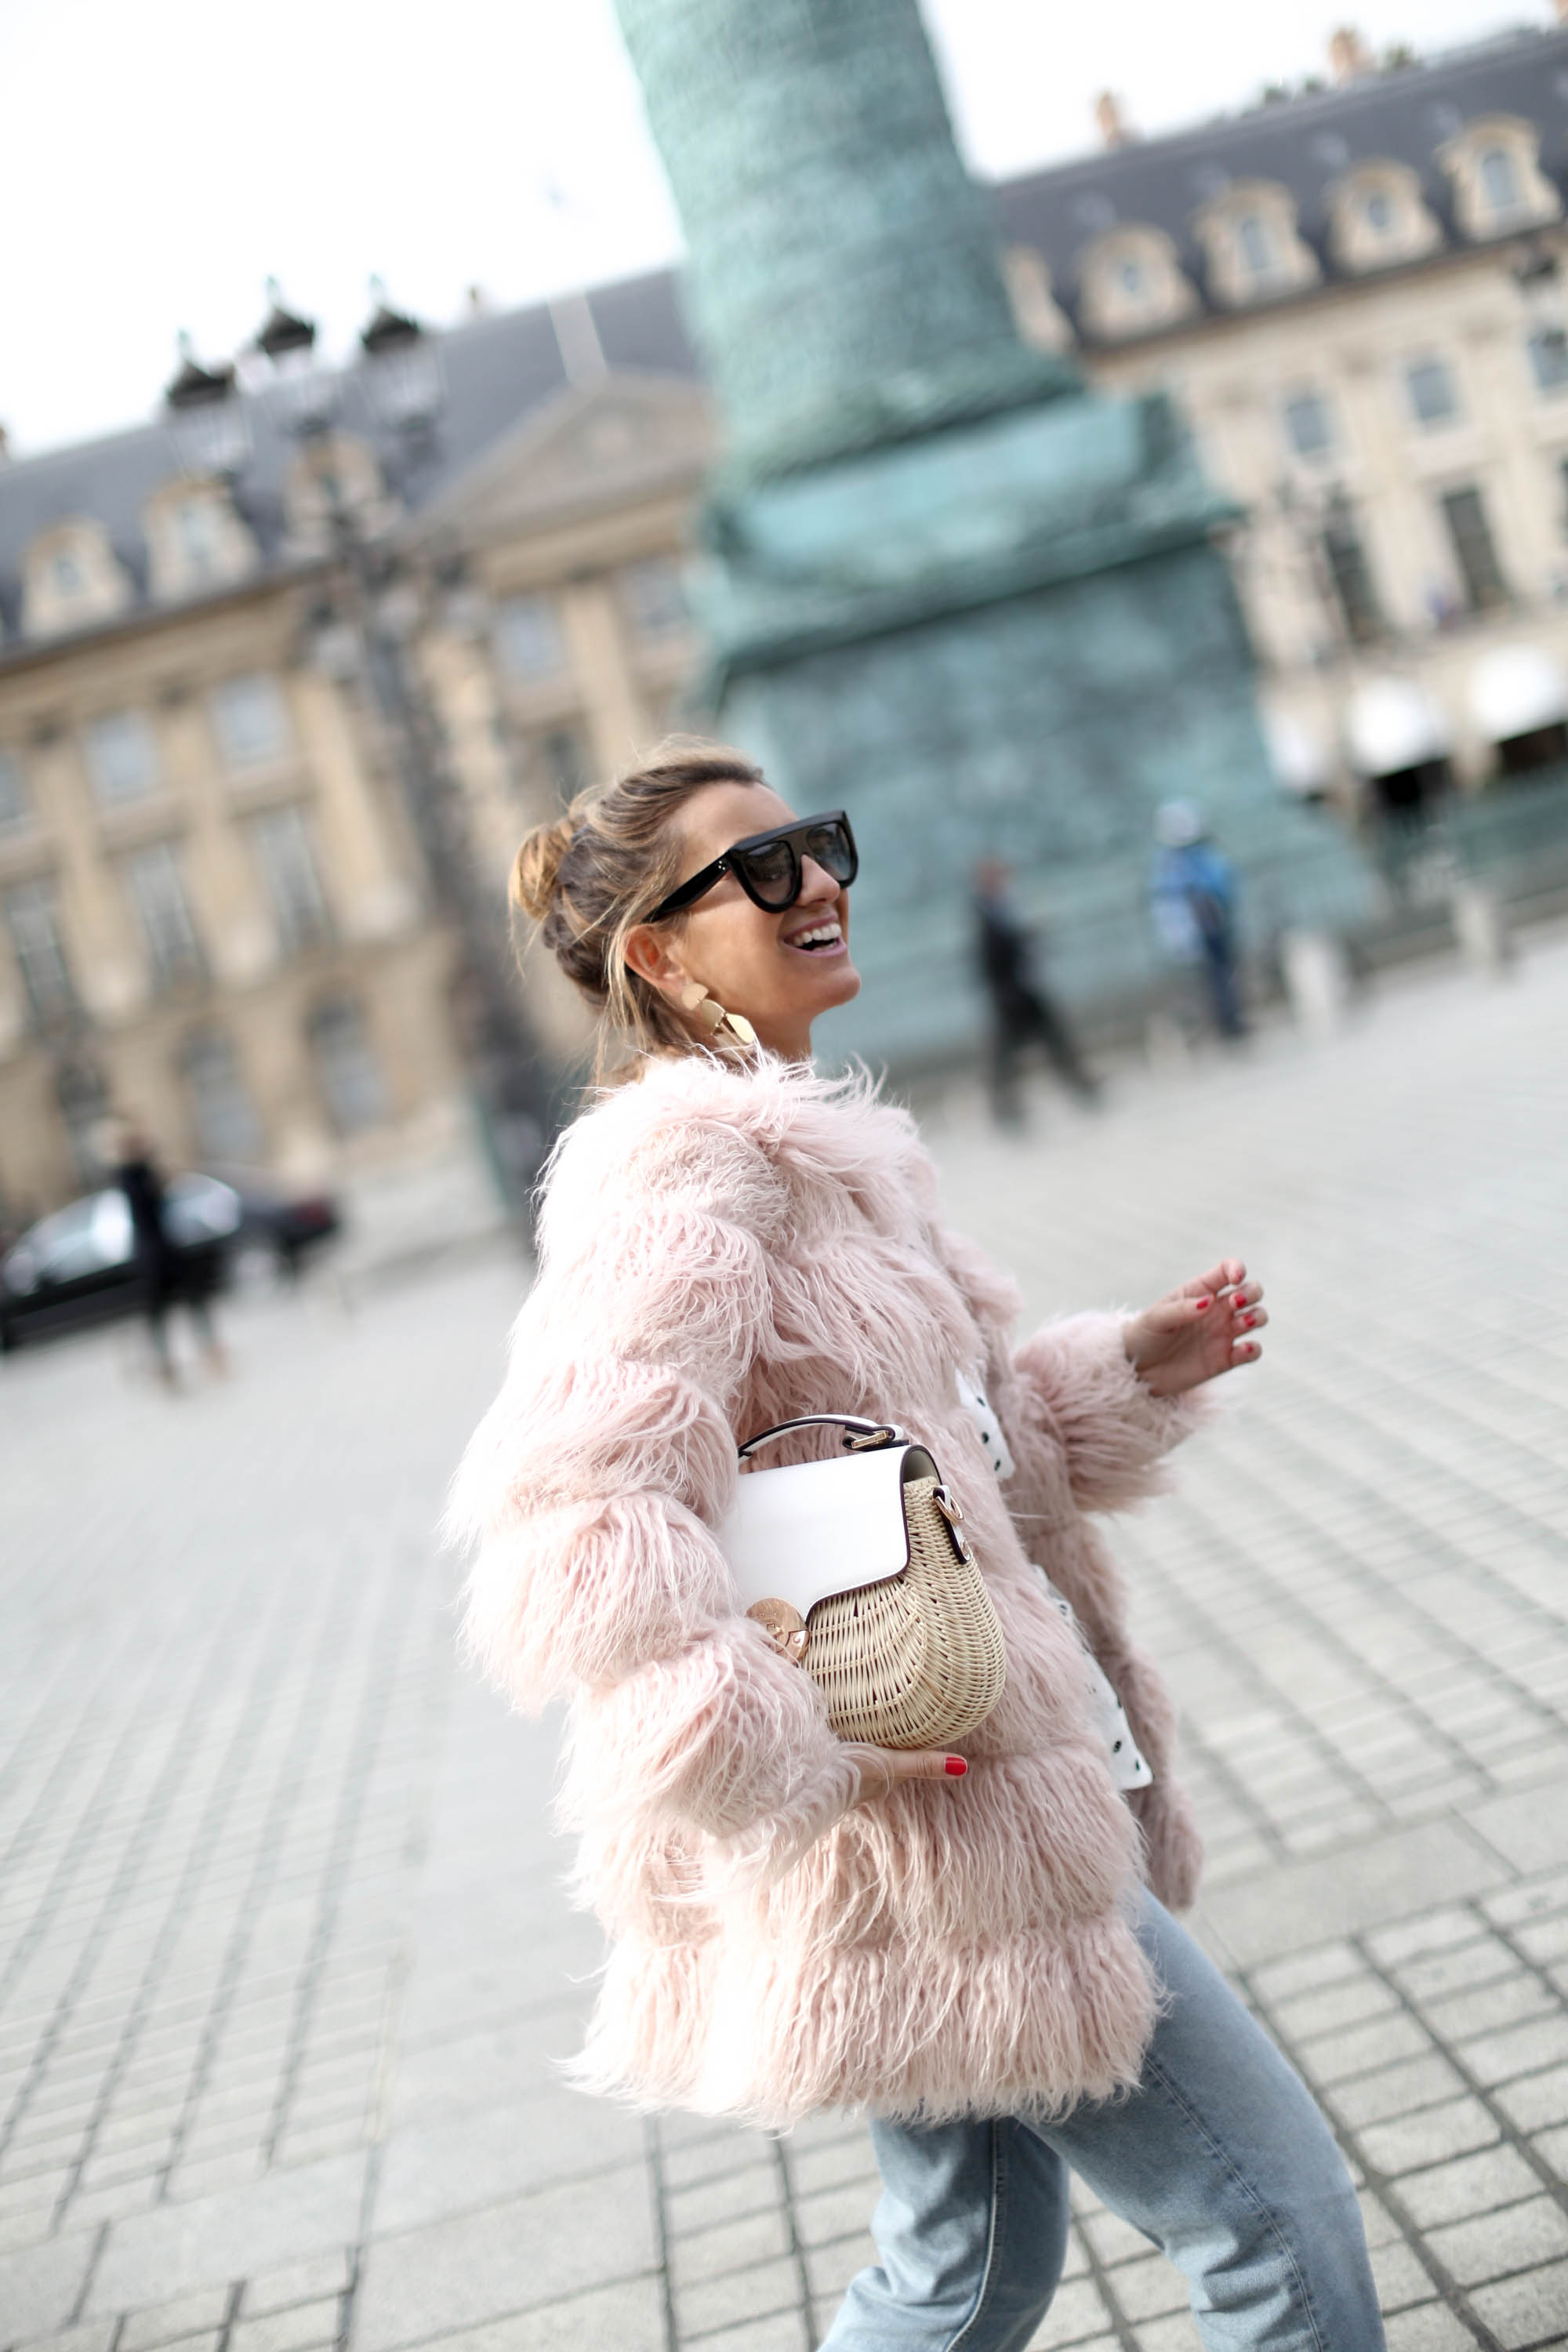 PINK IN PLACE VENDÔME-104372-bartabacmode